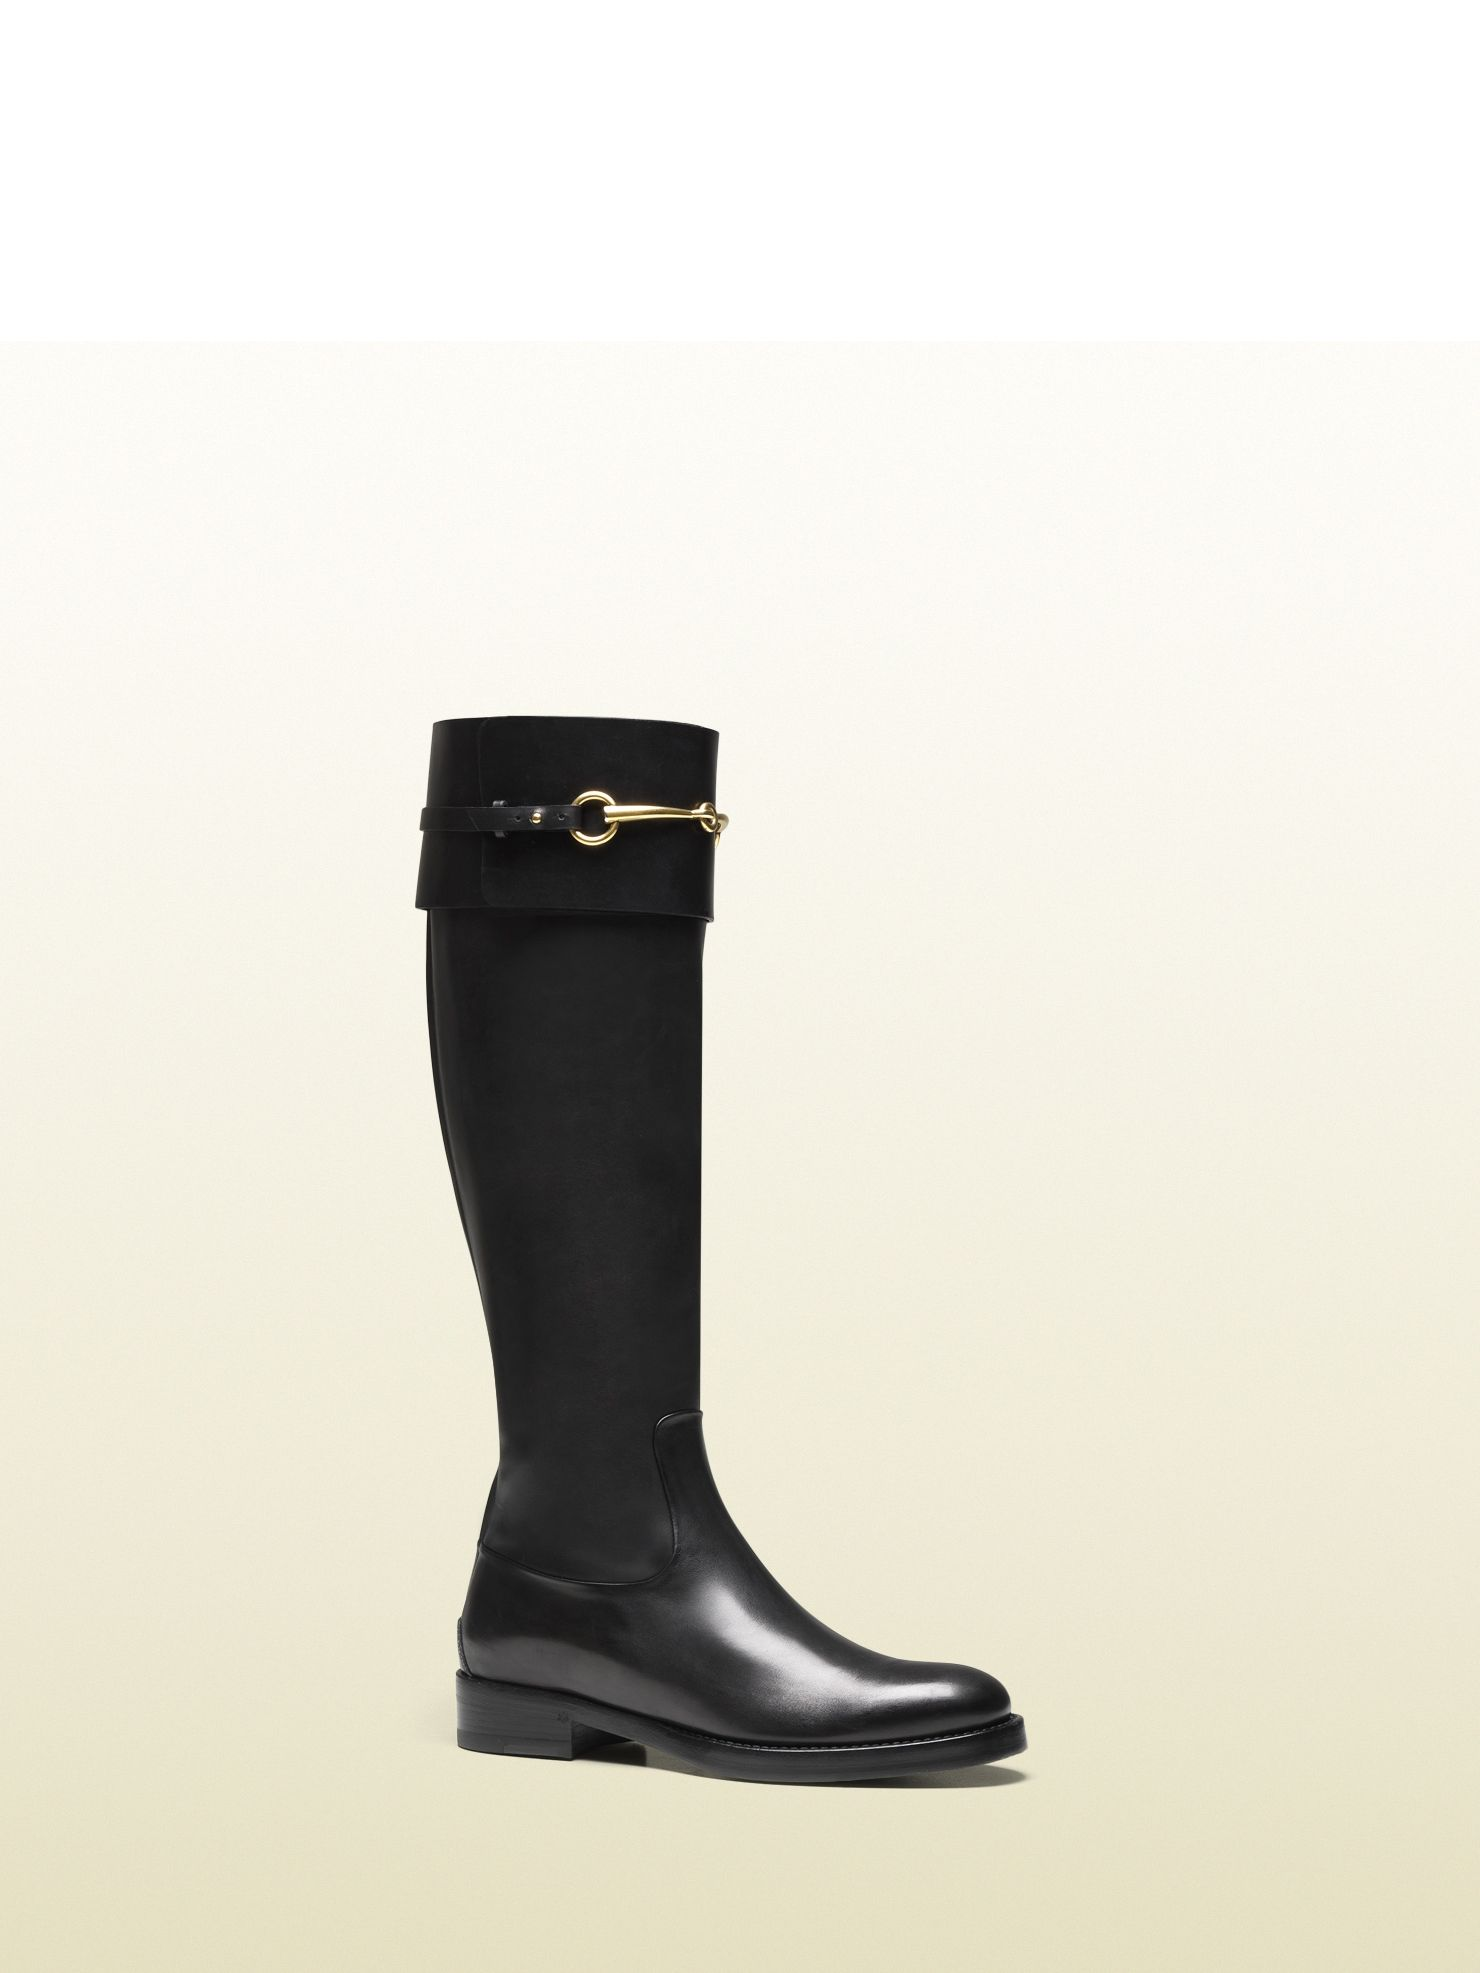 Gucci - 323491 BLM00 1000 - jamie black leather riding boot - black  leather Made in Italy metal gucci logo under the arch of the shoe  functional closure at ... ec5b3c5c7df6